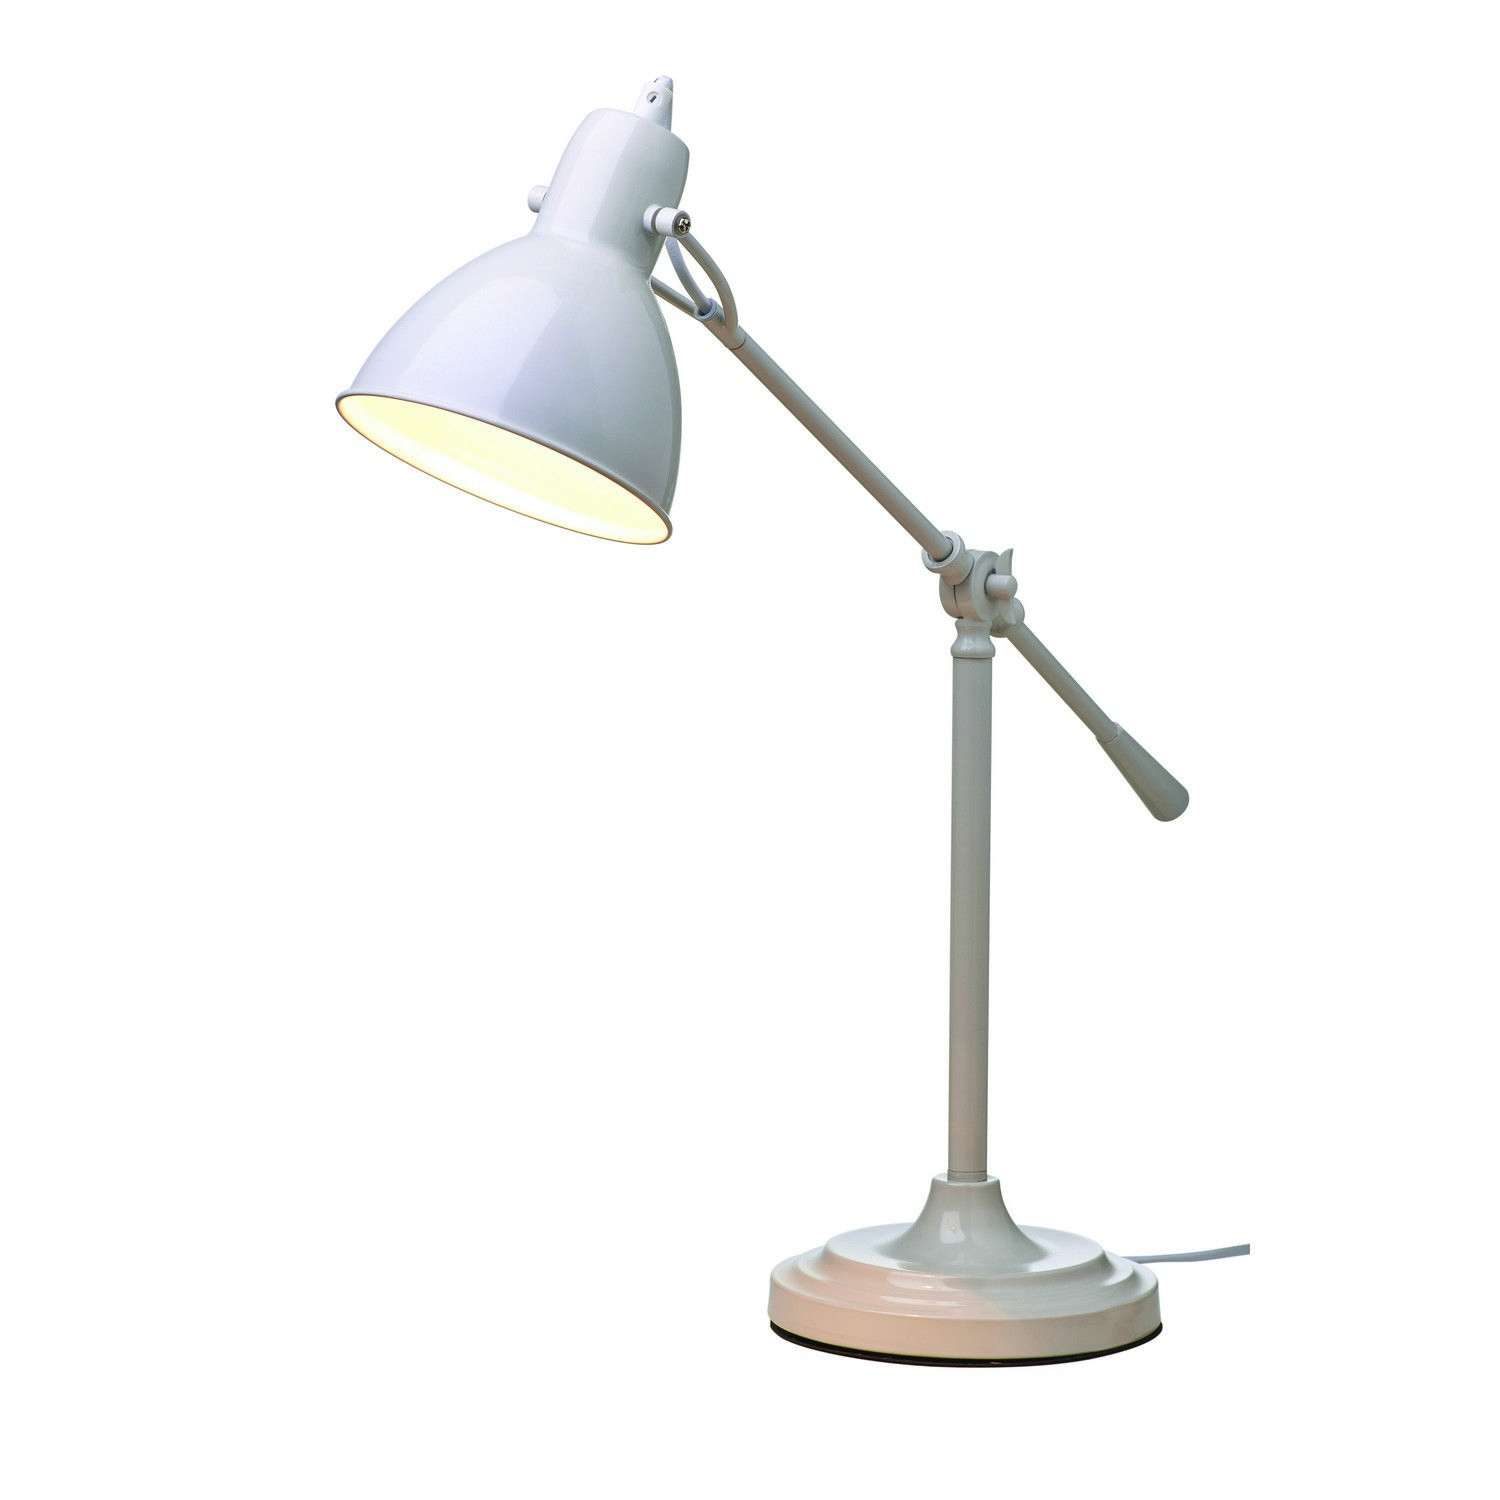 Buy lever arm table lamp stone table lamps the range kakkoii buy lever arm table lamp stone table lamps the range aloadofball Choice Image